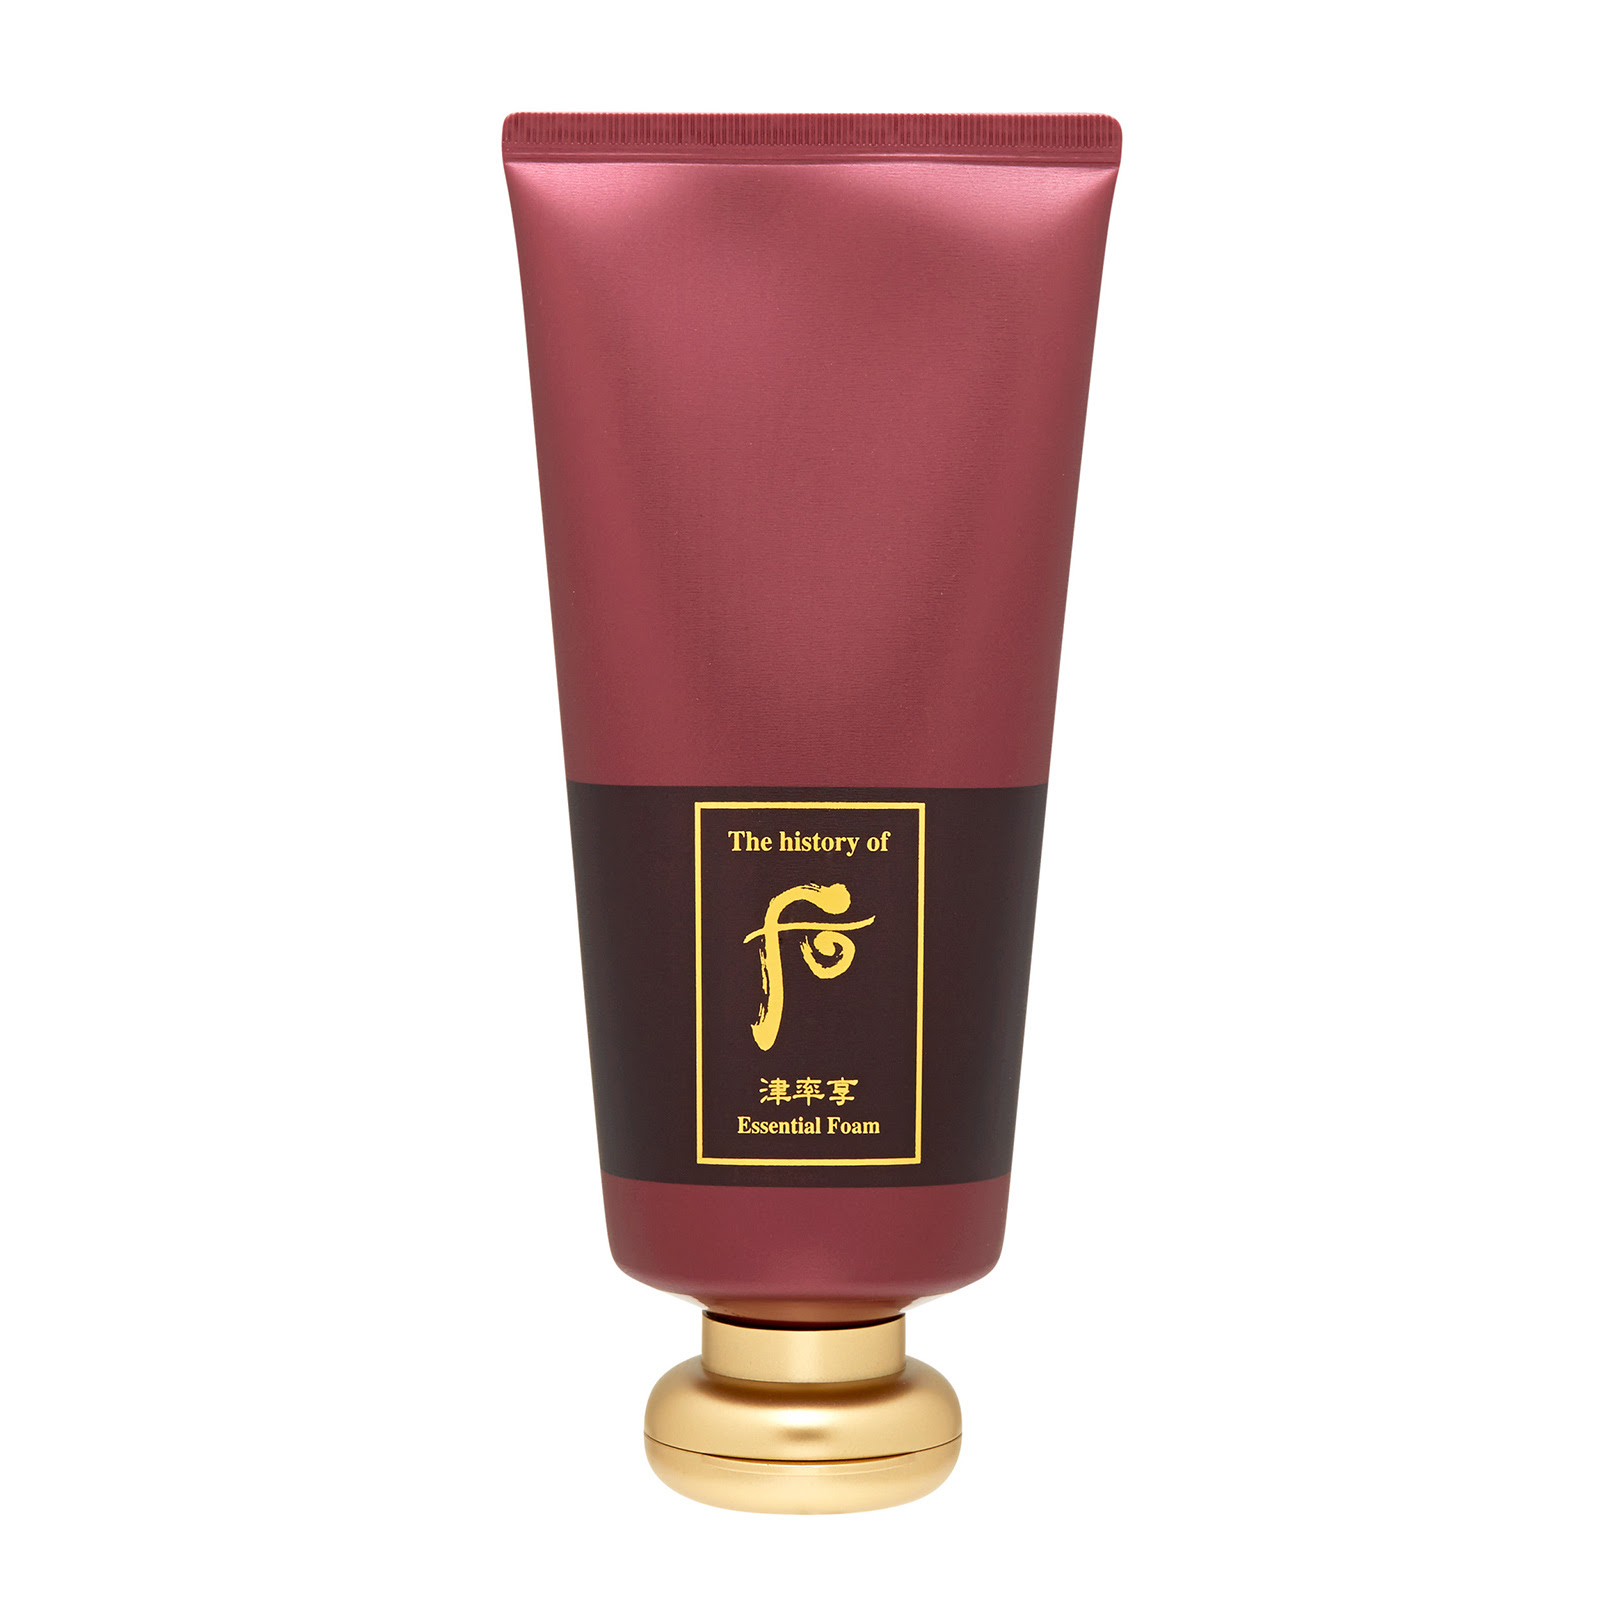 The History of Whoo Jinyul Essential Foam